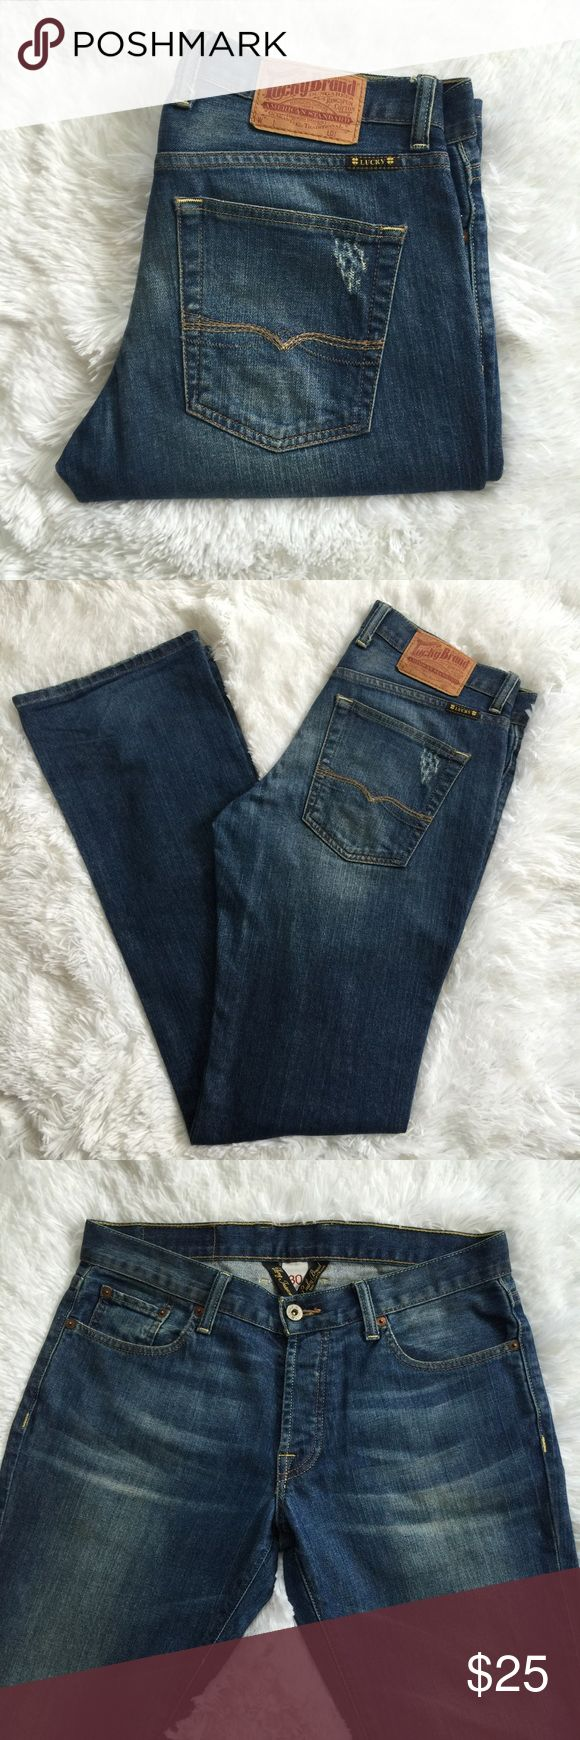 """Mens Lucky Brand Jeans Lucky Brand Bootcut Jeans / Long Inseam 35"""" / Slim Bootleg / Good Condition Lucky Brand Jeans Straight"""